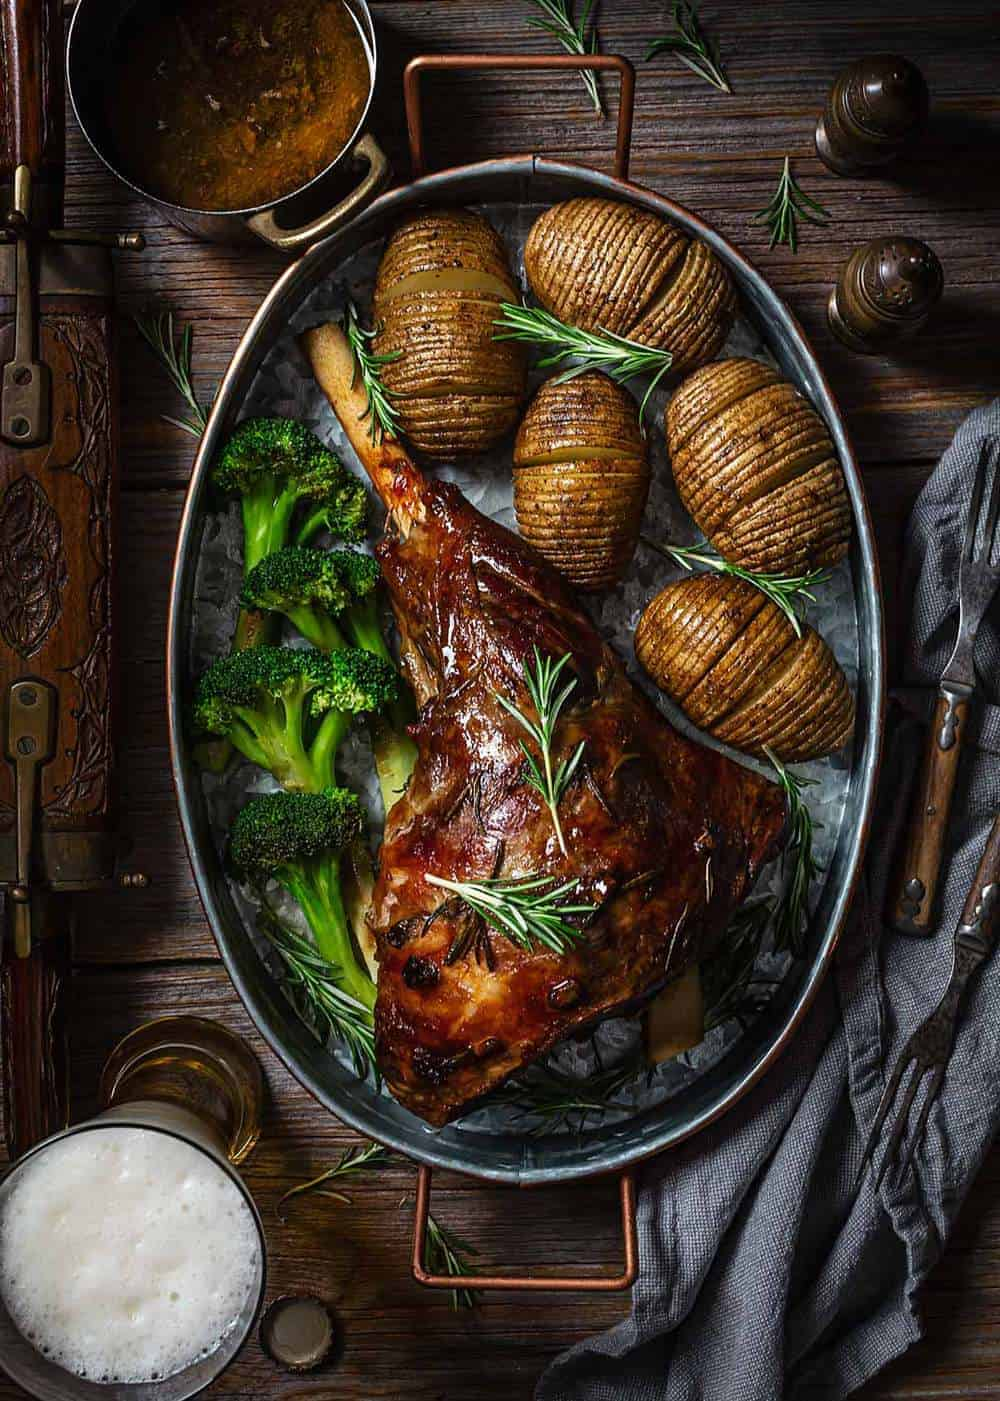 Slow roasted leg of lamb with beer on a metal roasting pan with potatoes and broccoli on a wooden table.